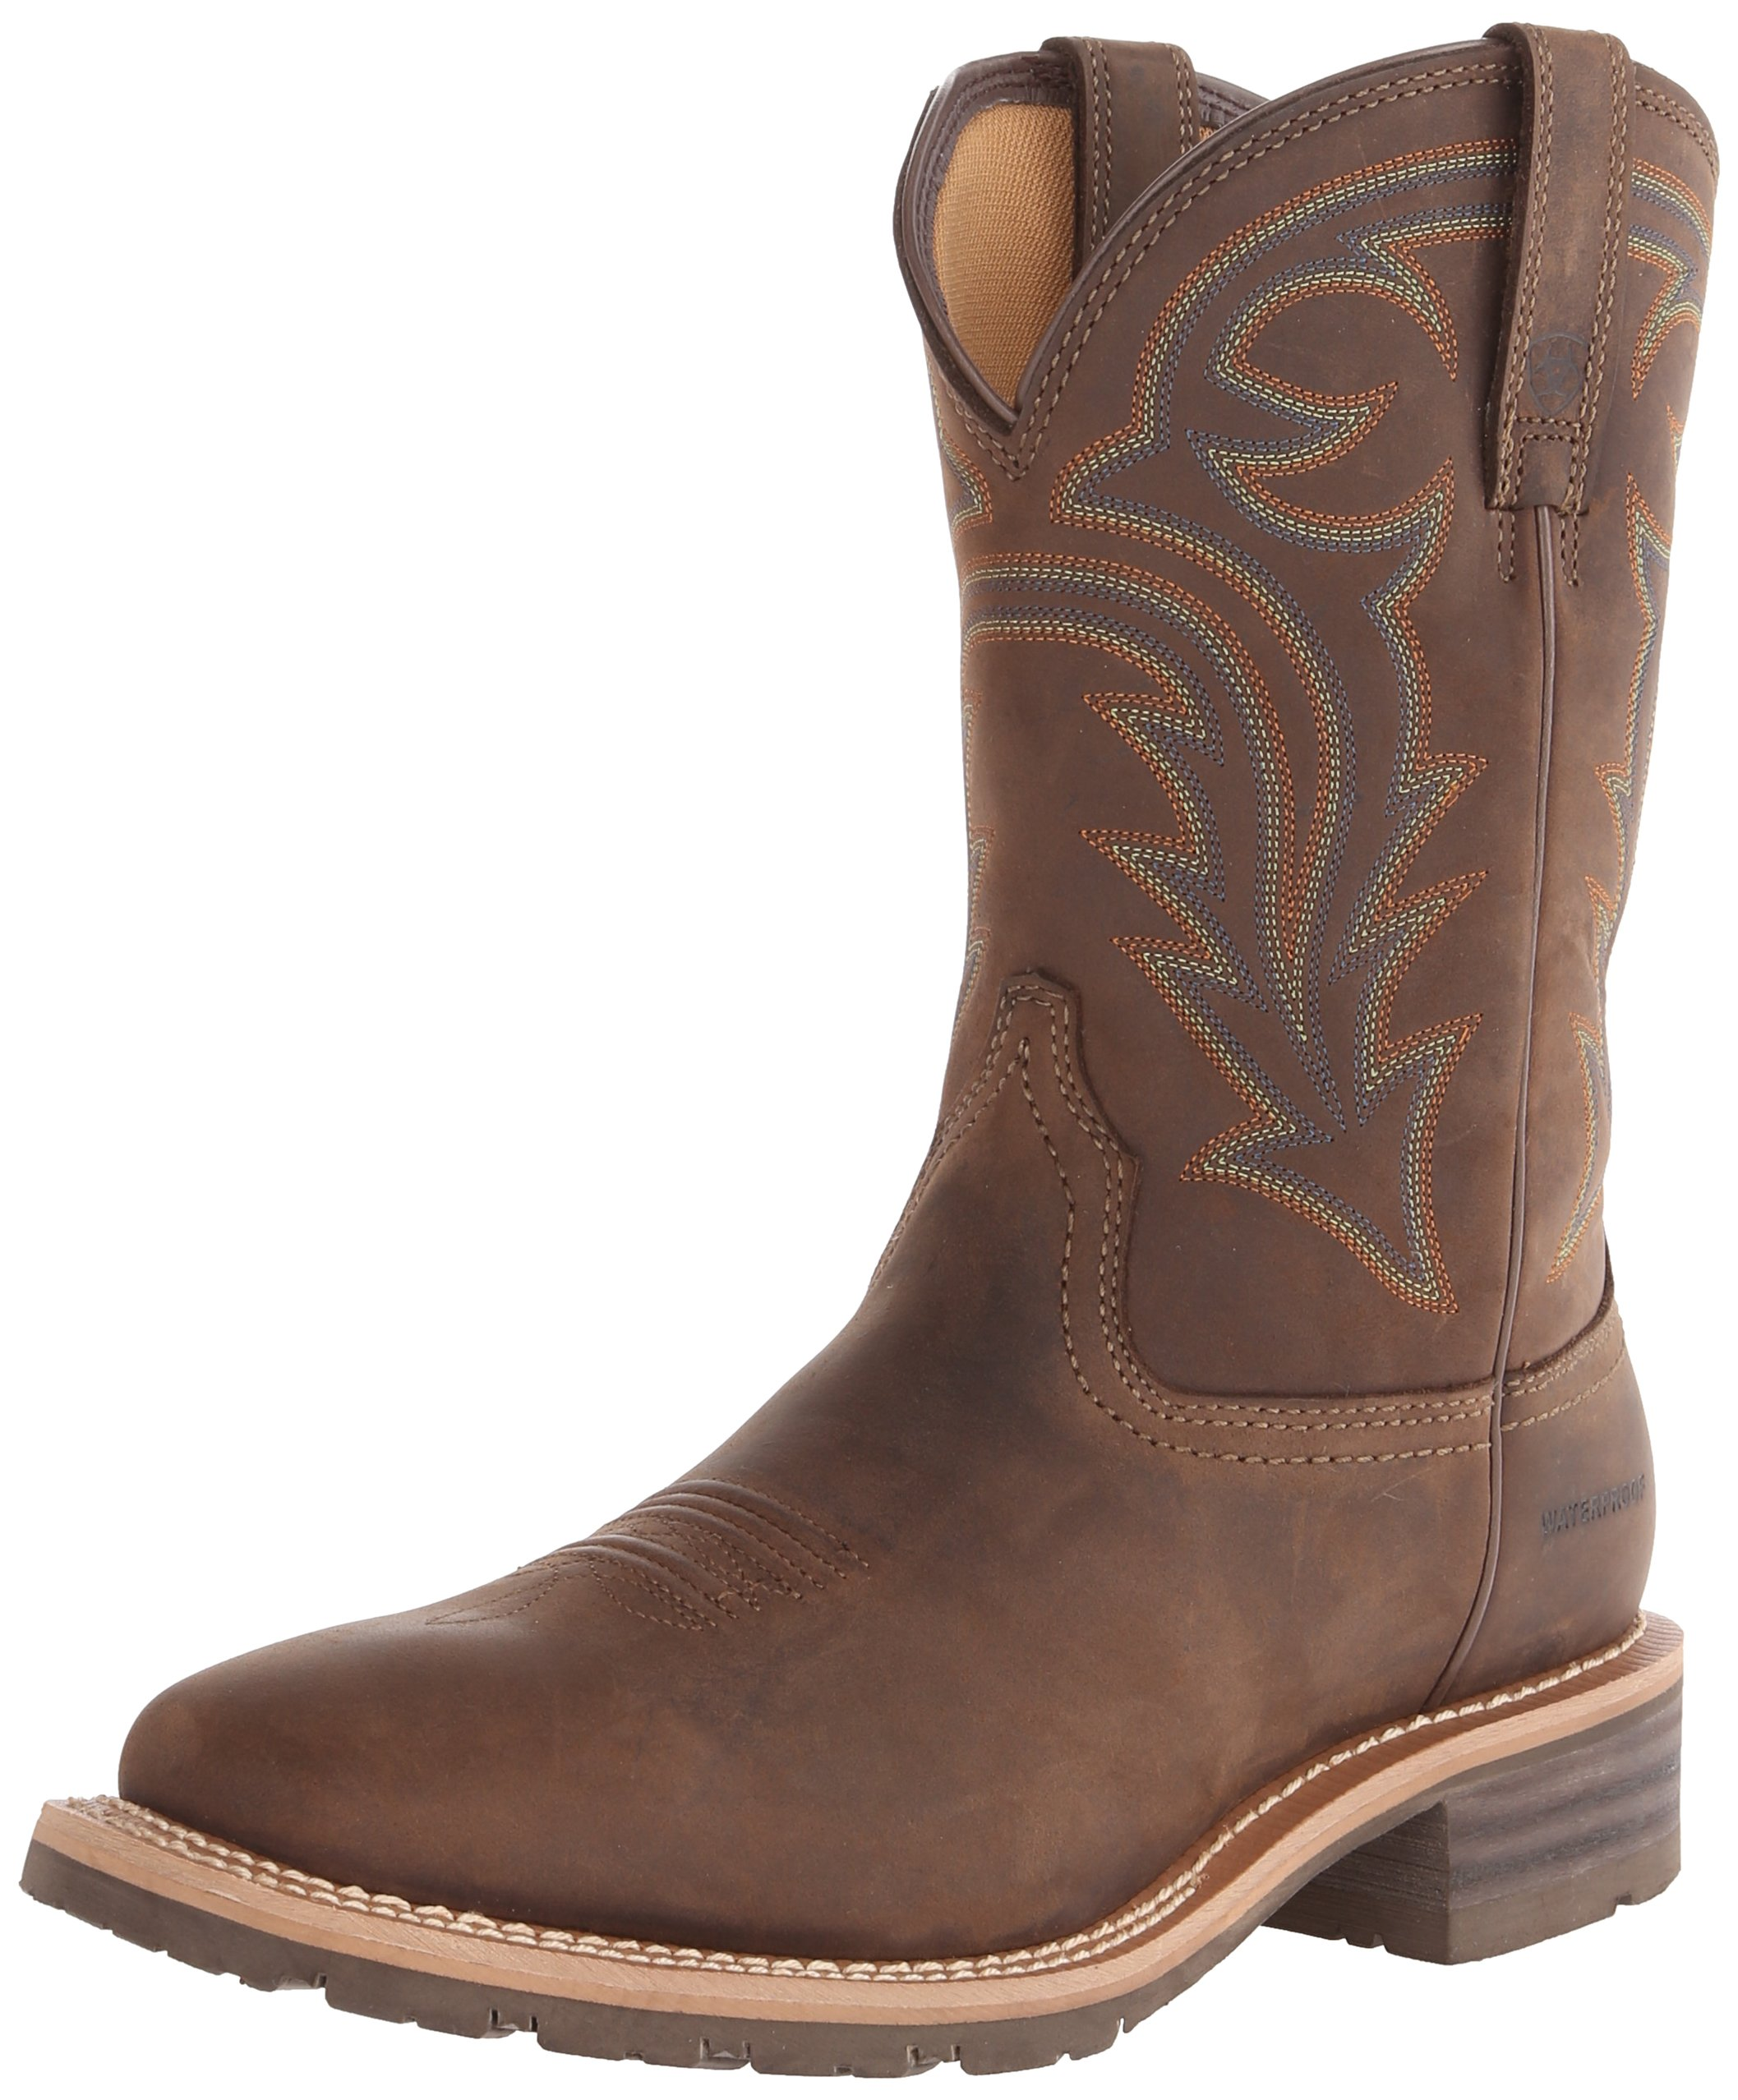 Ariat Men's Hybrid Rancher H2O Western Cowboy Boot, Oily Distressed Brown, 8.5 M US